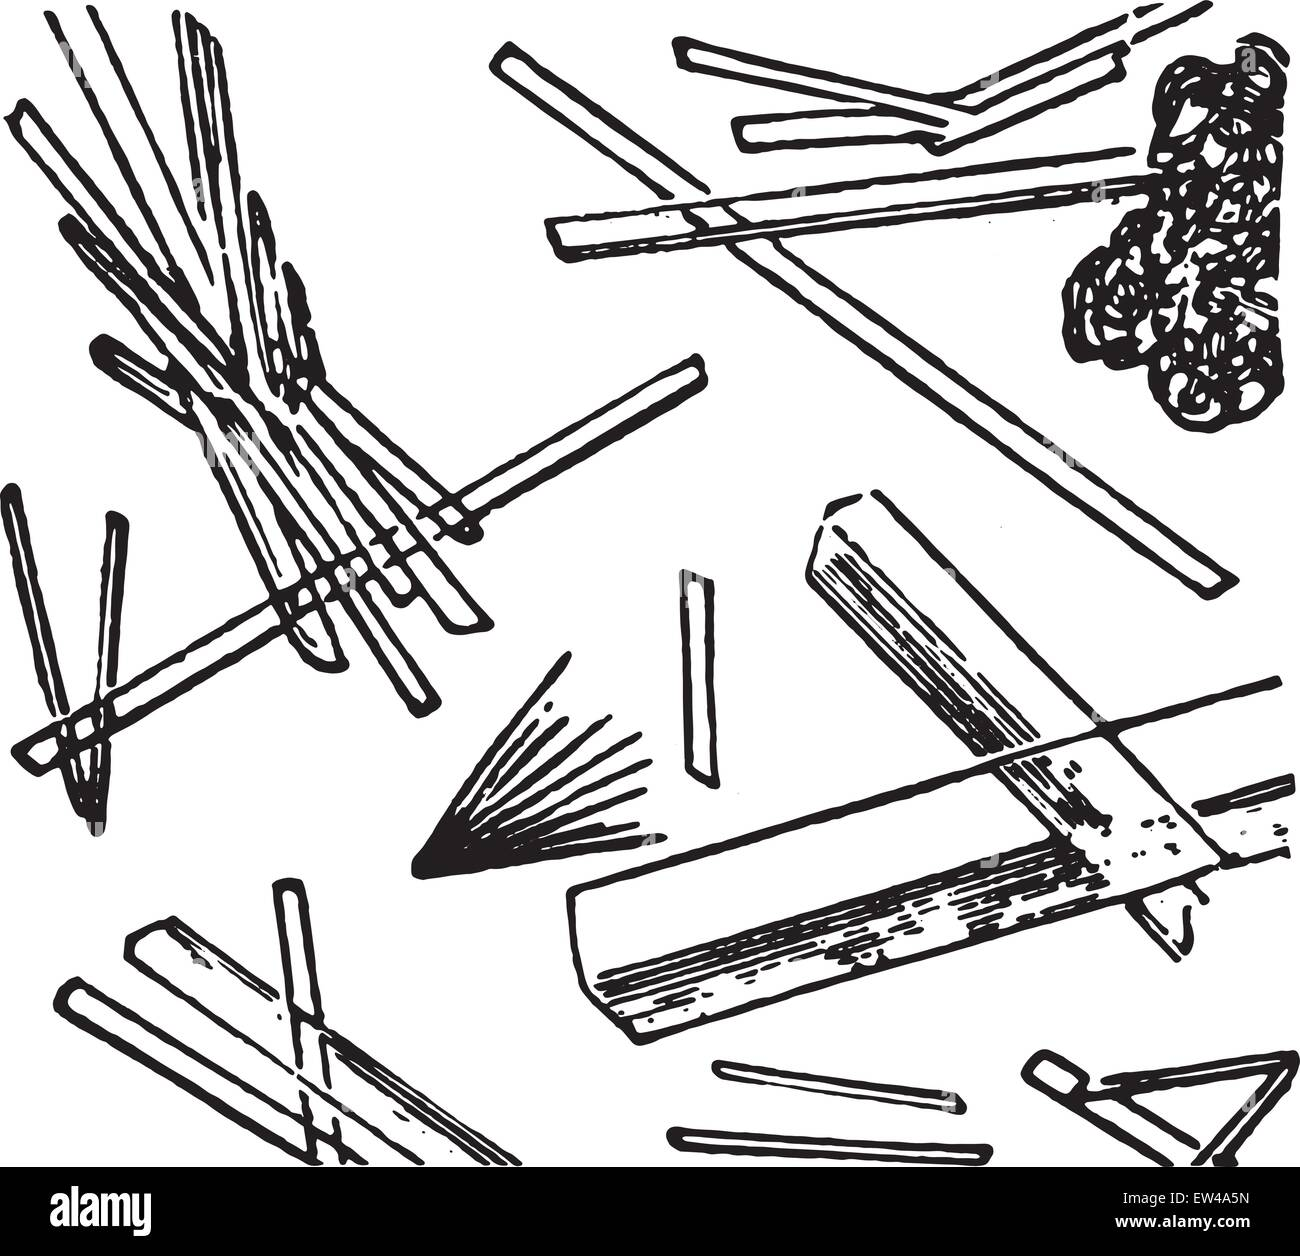 Calcium sulphate, elongated transparent needles or tablets, vintage engraved illustration. - Stock Image